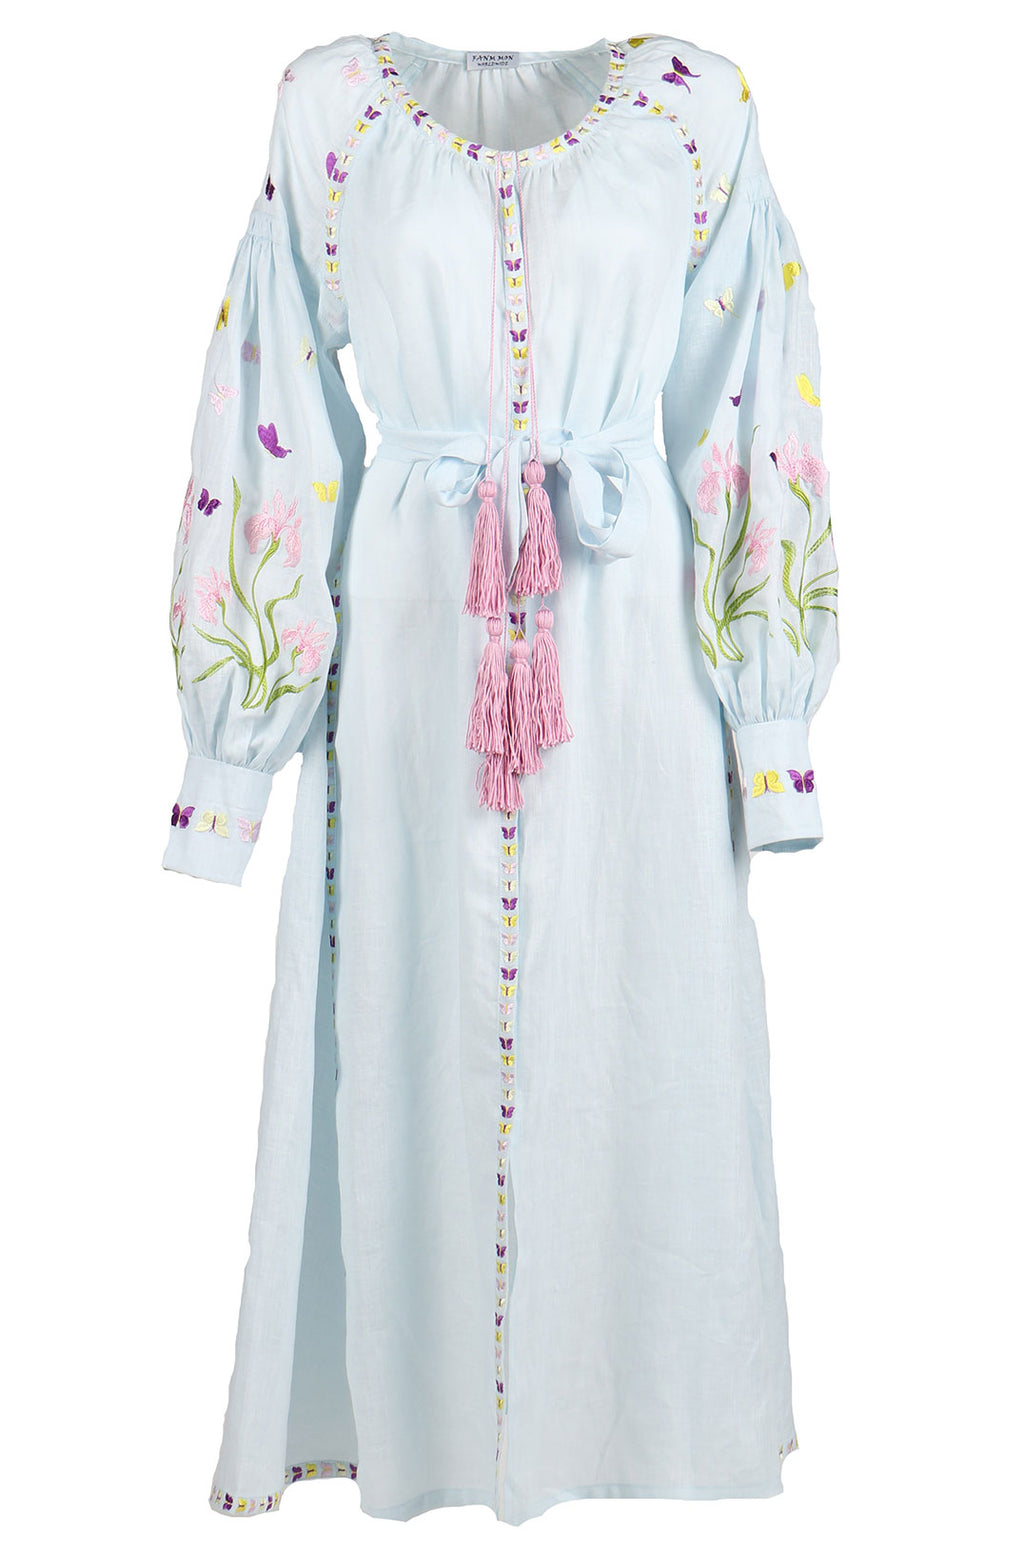 Fanm Mon Light Blue Linen Floral Butterfly Embroidery Vyshyvanka MIDI Dress MD012A4